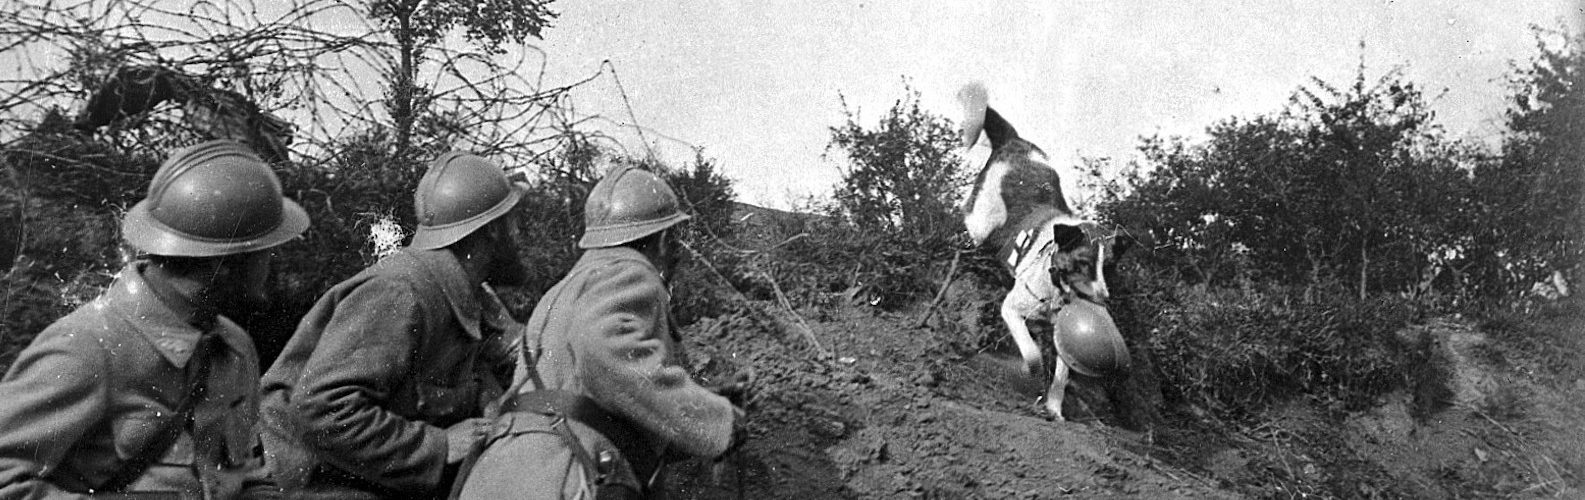 wounded soldiers in WWI wait for a rescue dog